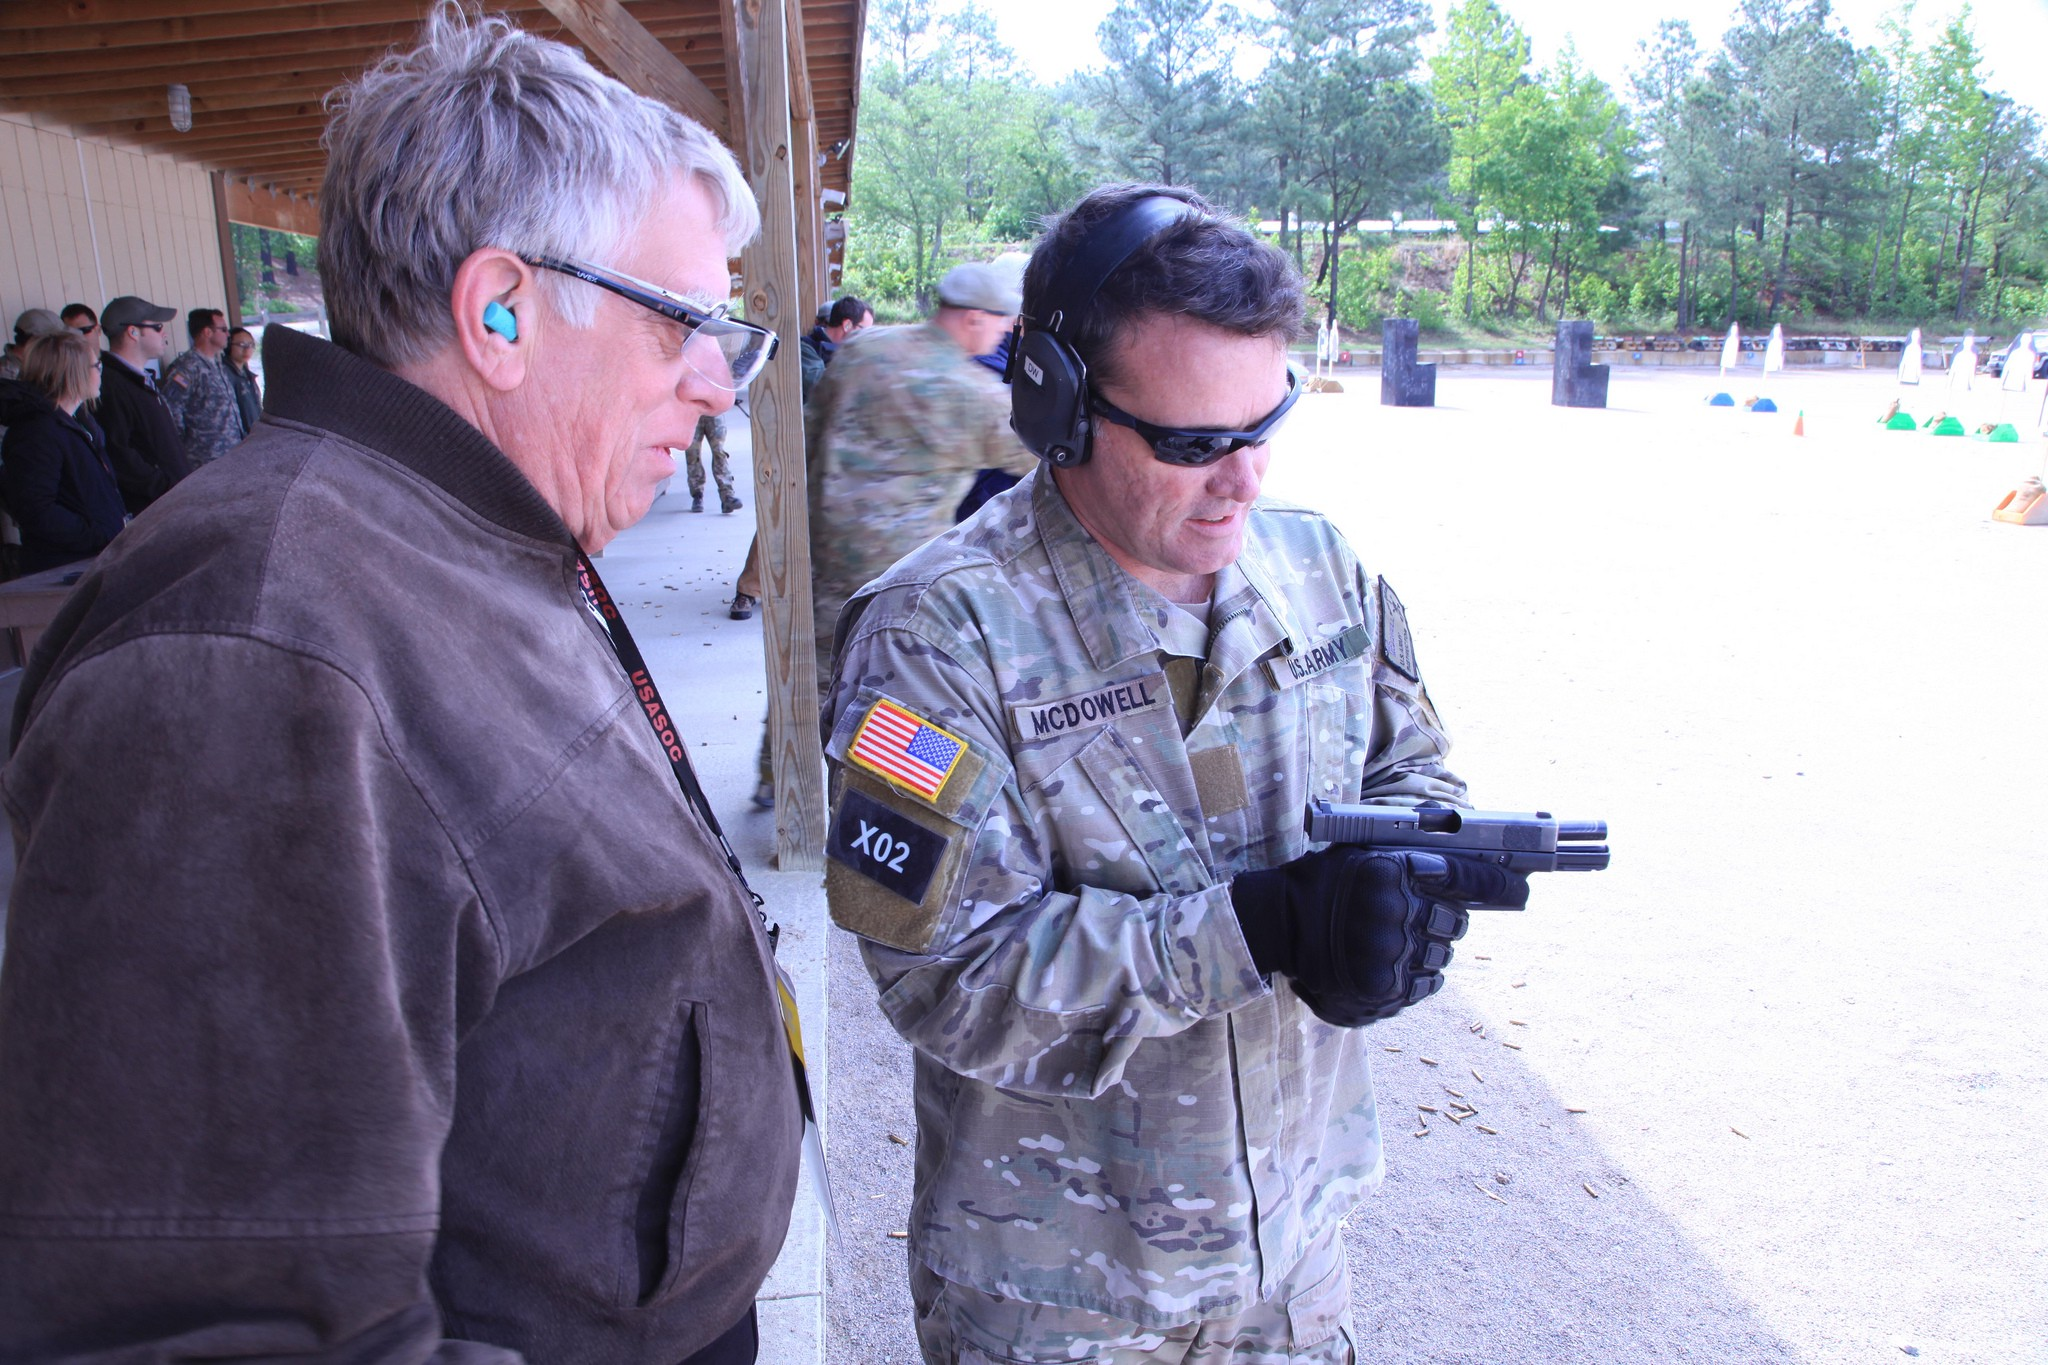 An Army special forces soldier shows a Glock to a civilian during a capabilities demonstration in 2012. Army photo